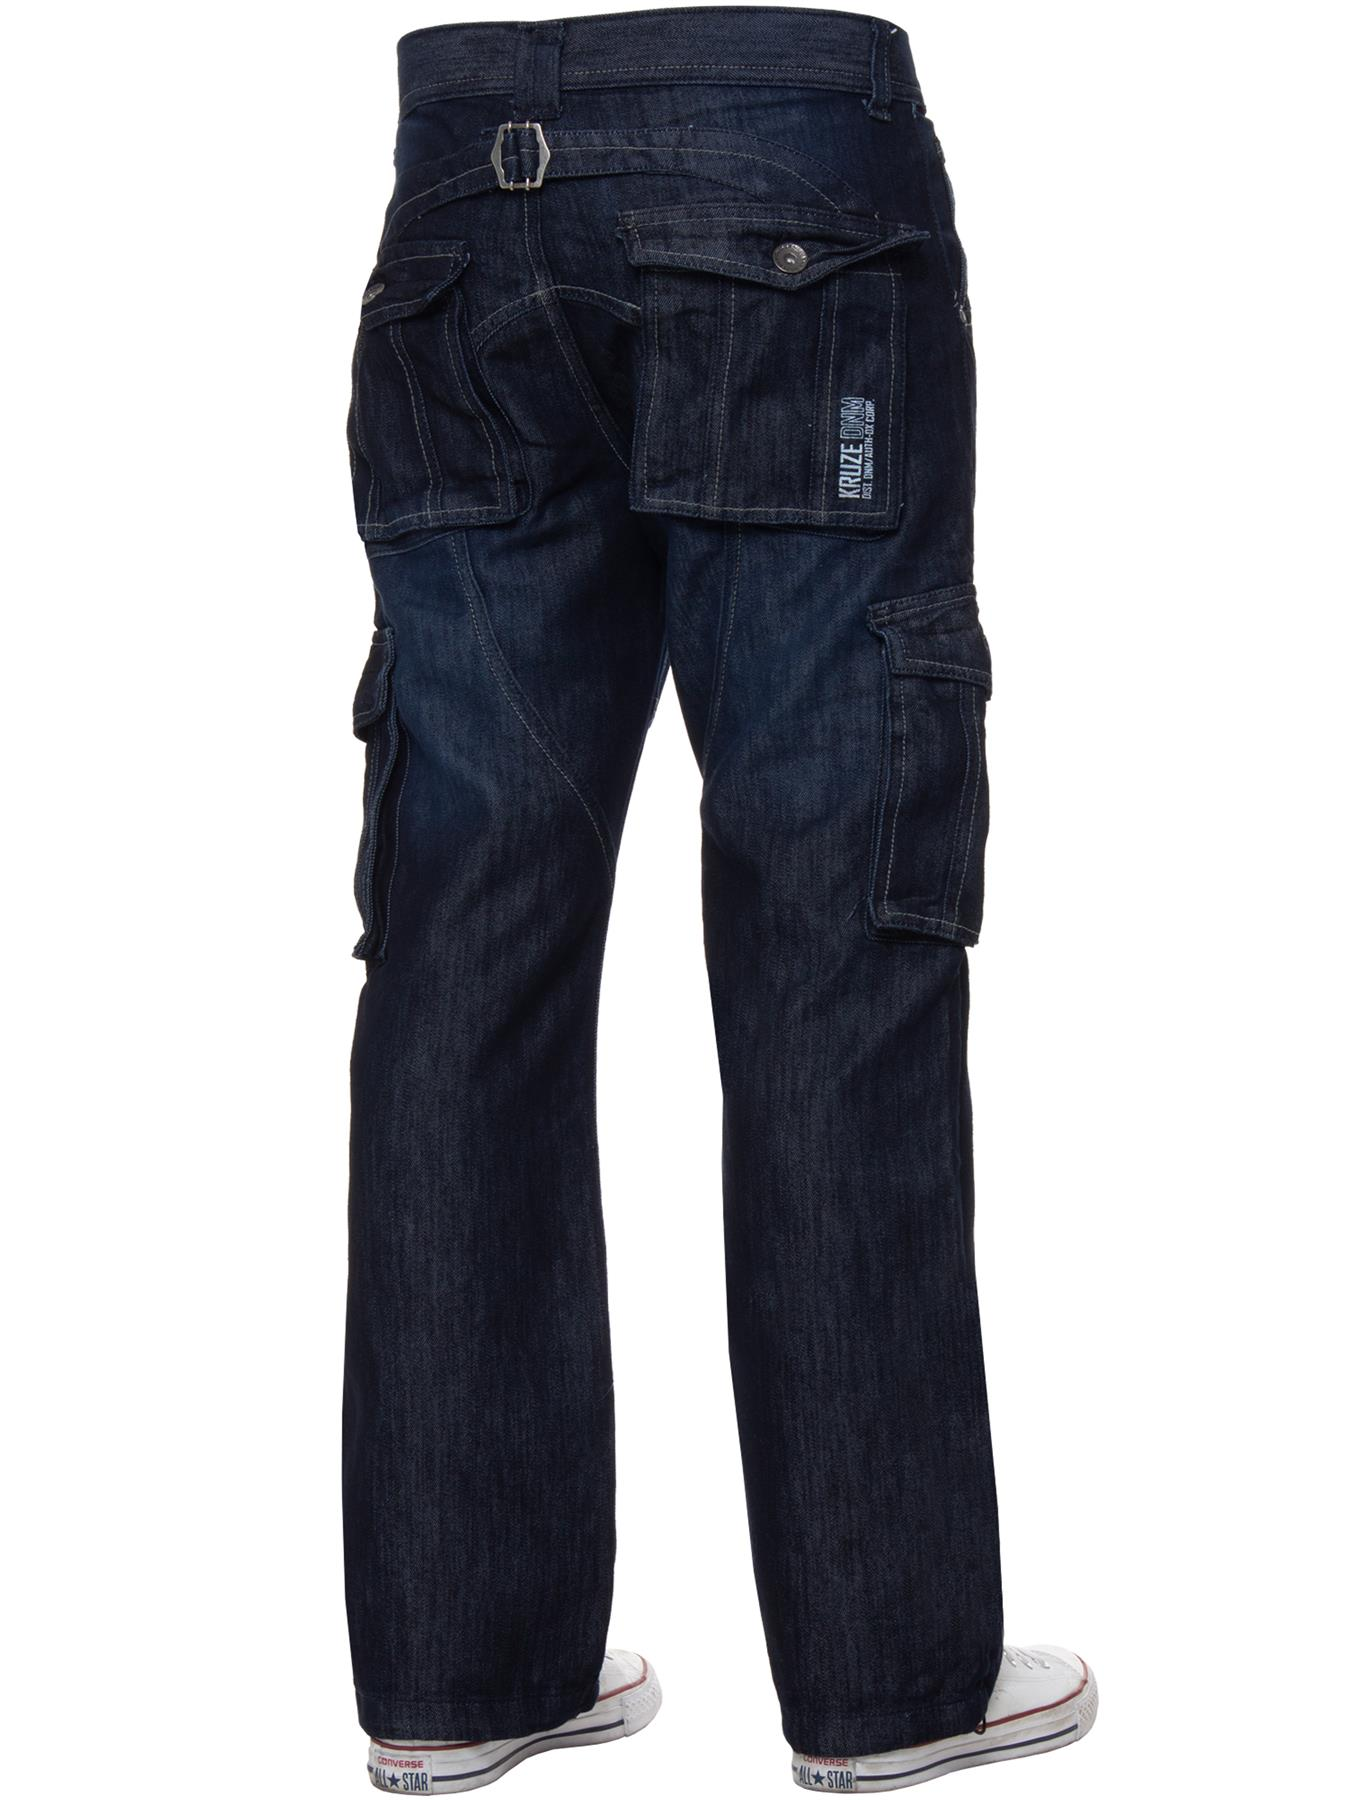 Kruze-Mens-Cargo-Combat-Jeans-Casual-Work-Denim-Pants-Big-Tall-All-Waist-Sizes thumbnail 23